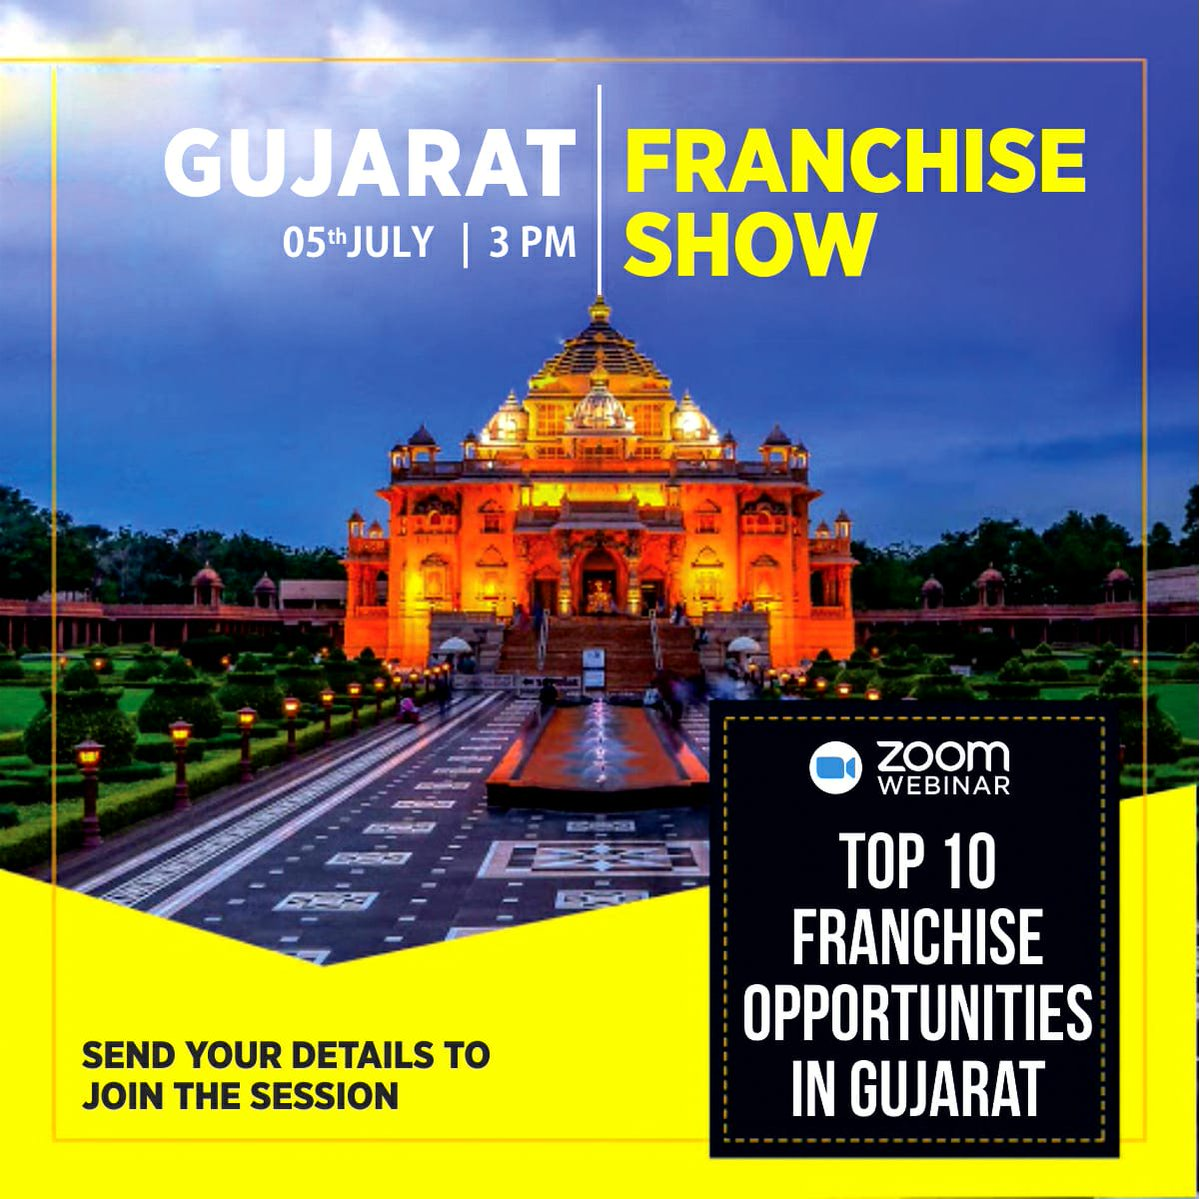 Top 10 #Franchise #Opportunities in #Gujarat! Join Our Free #Webinar Gujarat Franchise Show on 5th July | 3:00 pm to explore the opportunities.  Register here: https://t.co/H9FKpxvqcG  #event #investment #Entrepreneurs #show #business https://t.co/8p7pMTNsPw